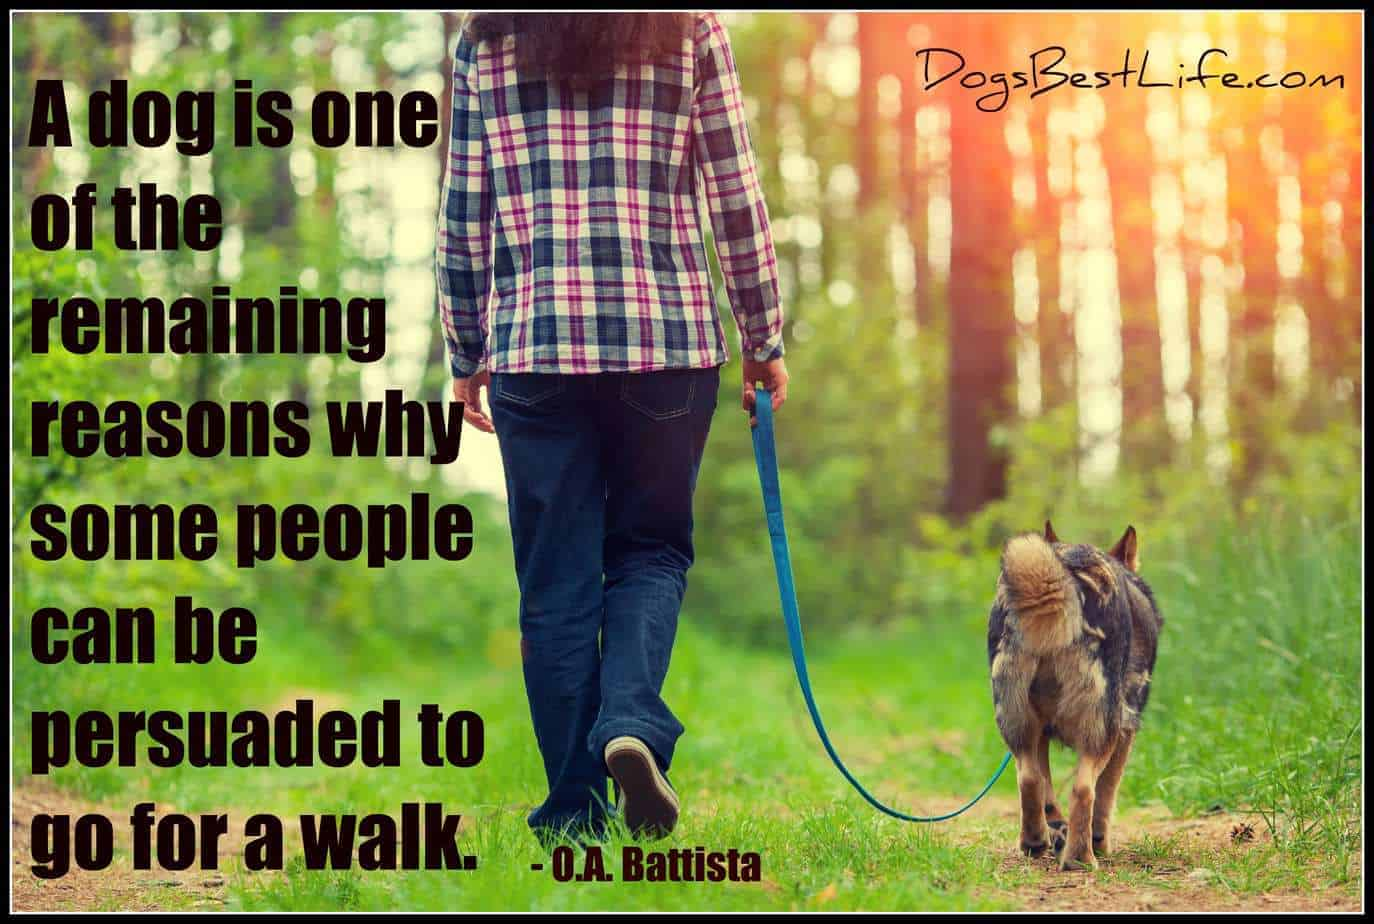 dog one of the few reasons people can still be persuaded to go for a walk